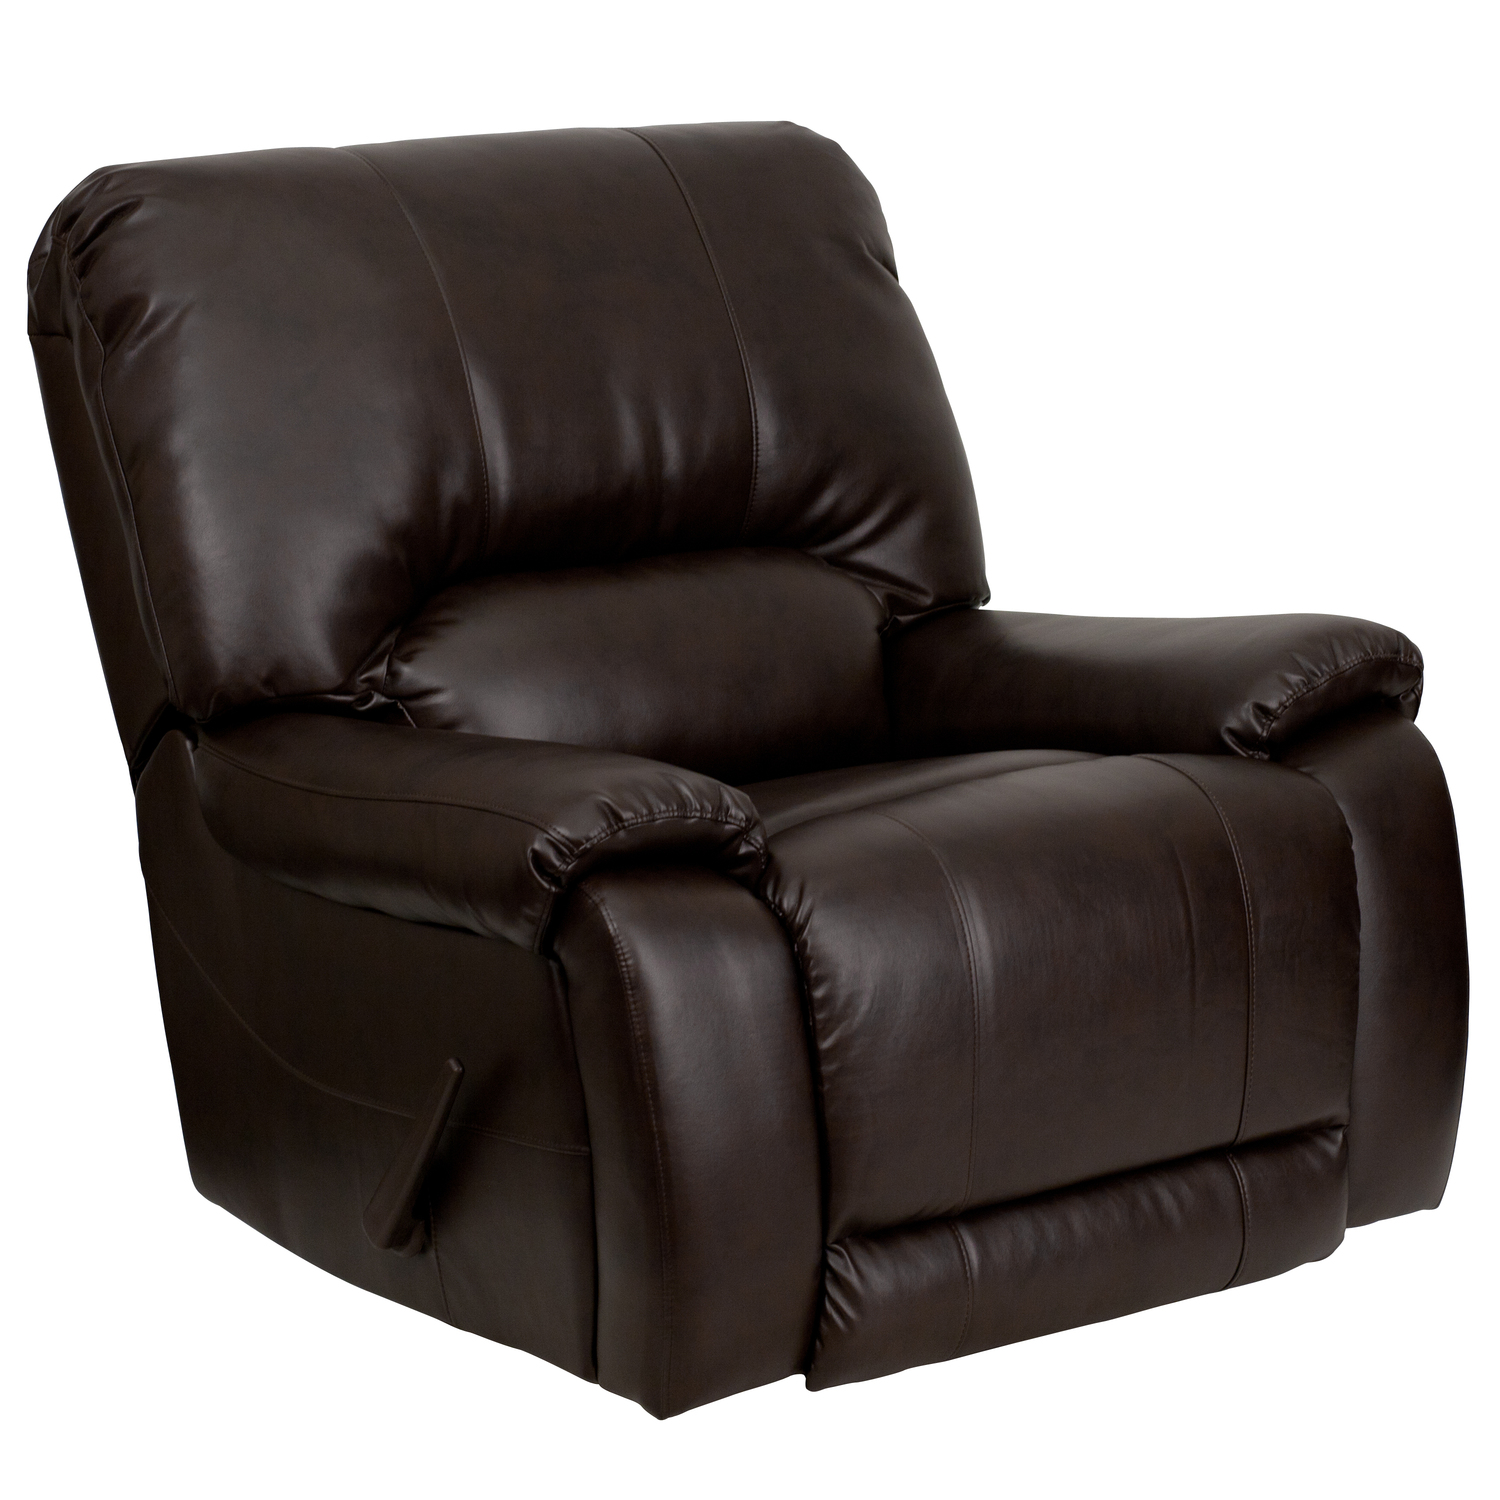 Overstuffed Brown Leather Lever Rocker Recliner Ojcommerce